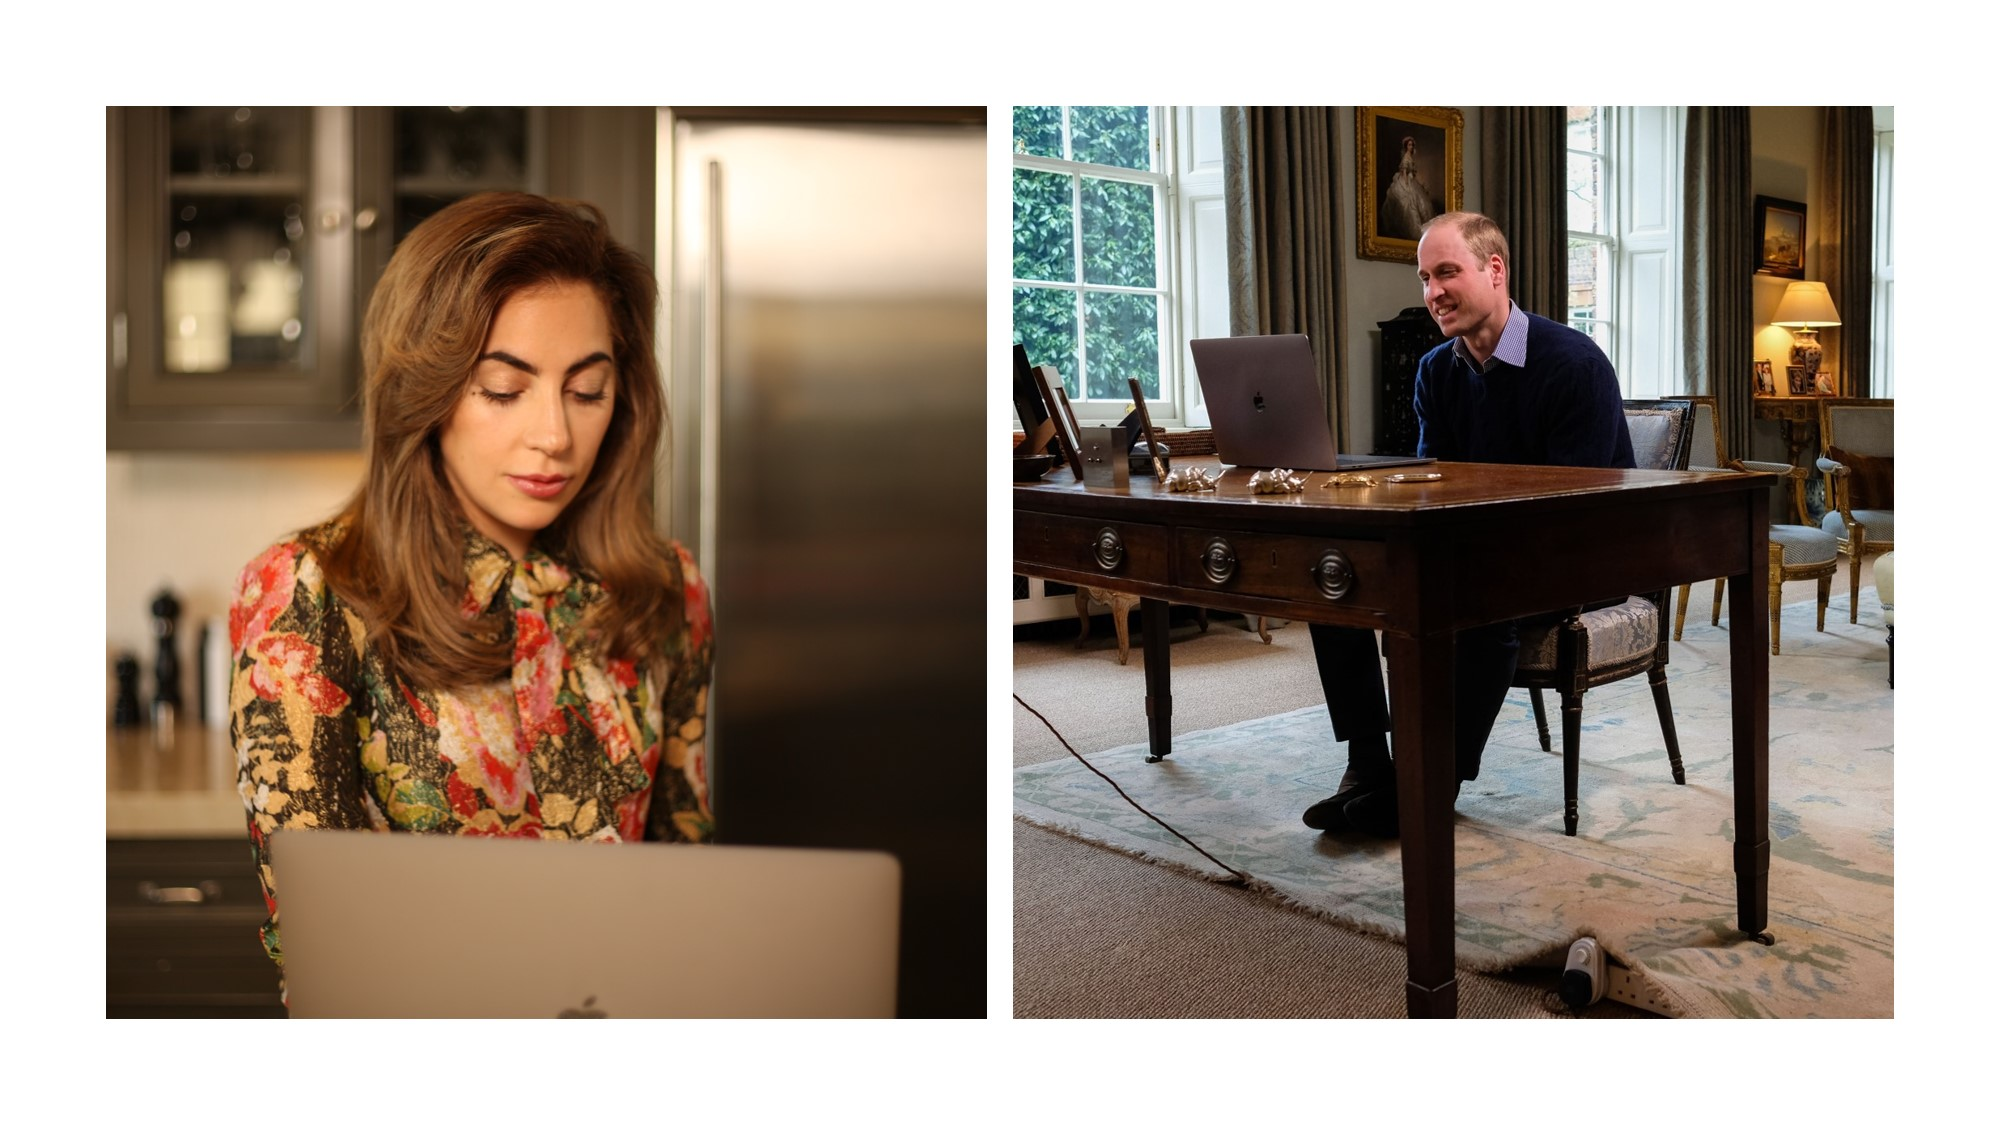 Lady Gaga and Prince William